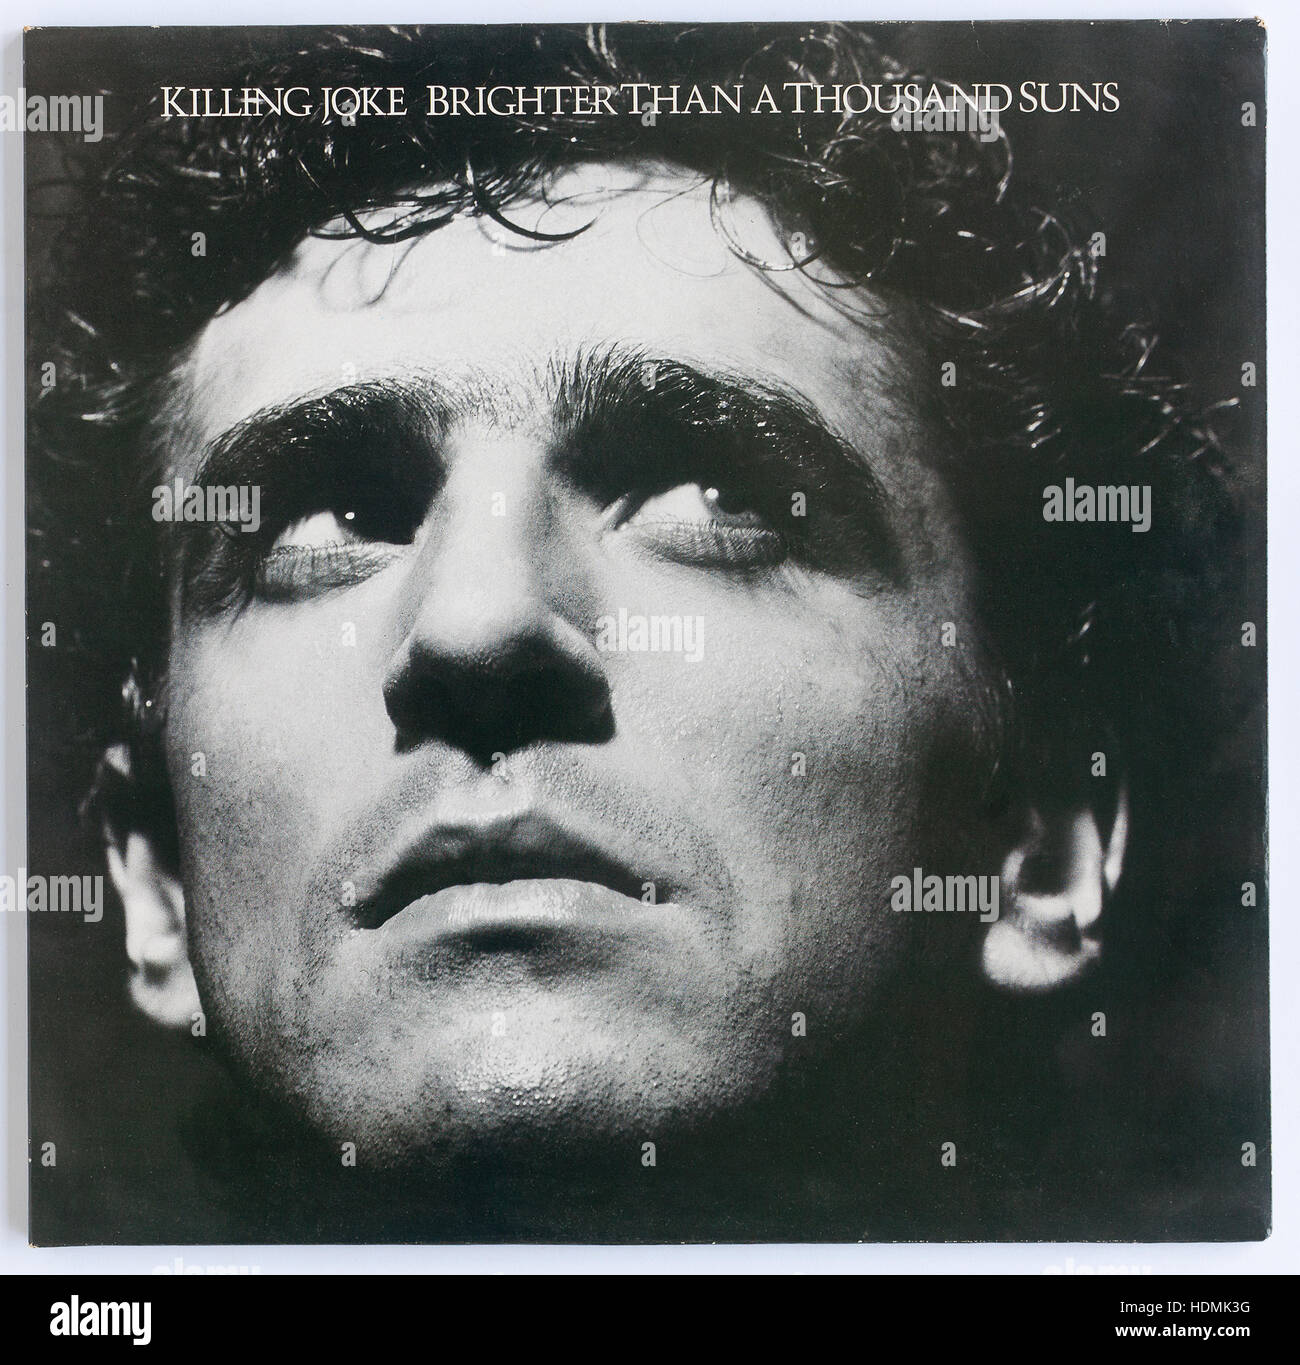 """The cover of """"Brighter Than A Thousand Suns"""", 1986 album by Killing Joke on EG - Editorial use only Stock Photo"""